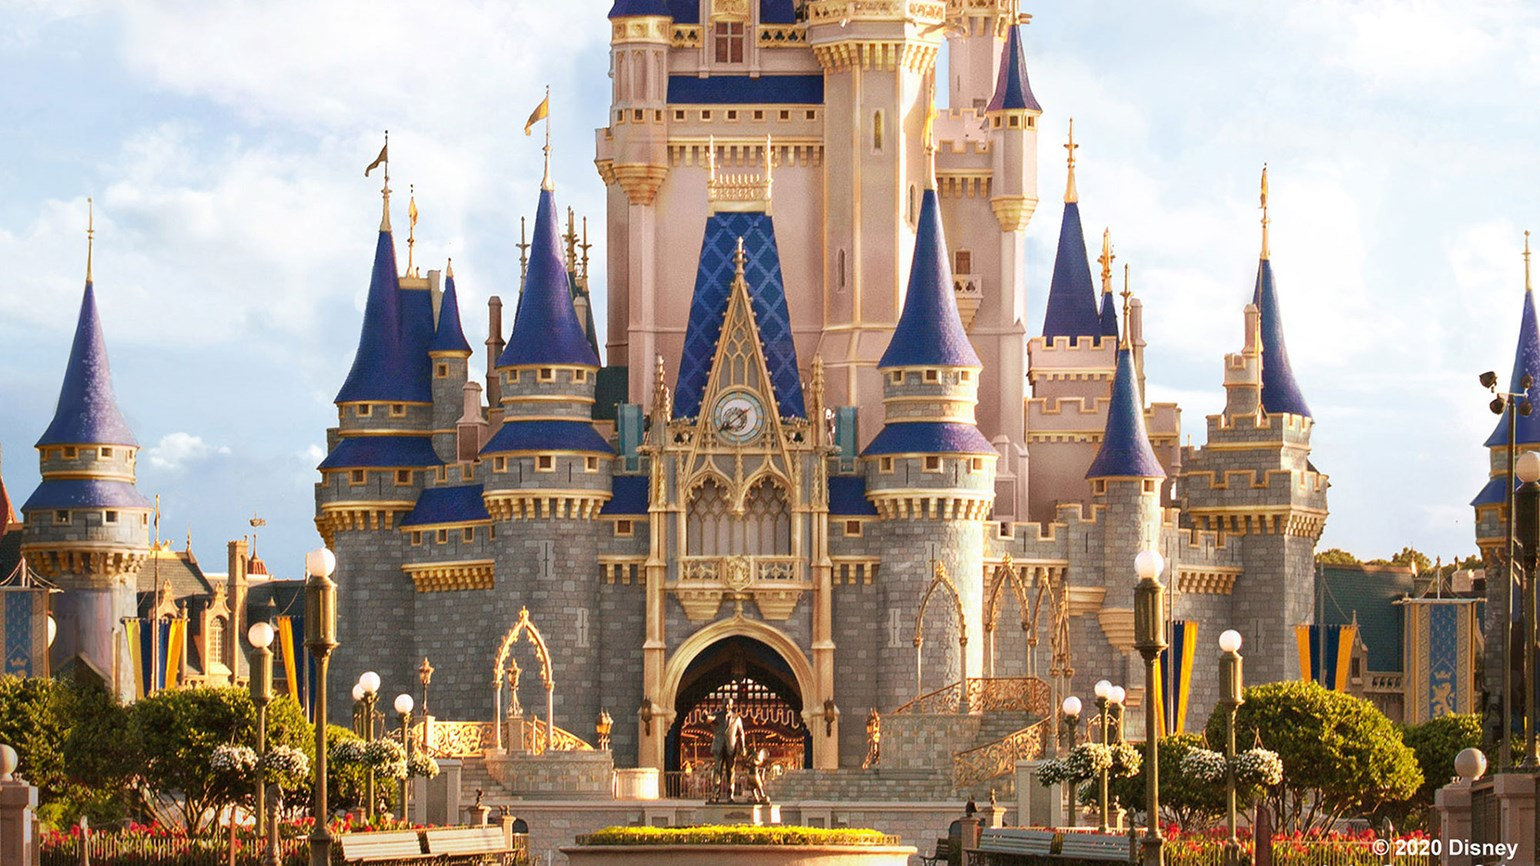 Disney World's Cinderella Castle getting facelift